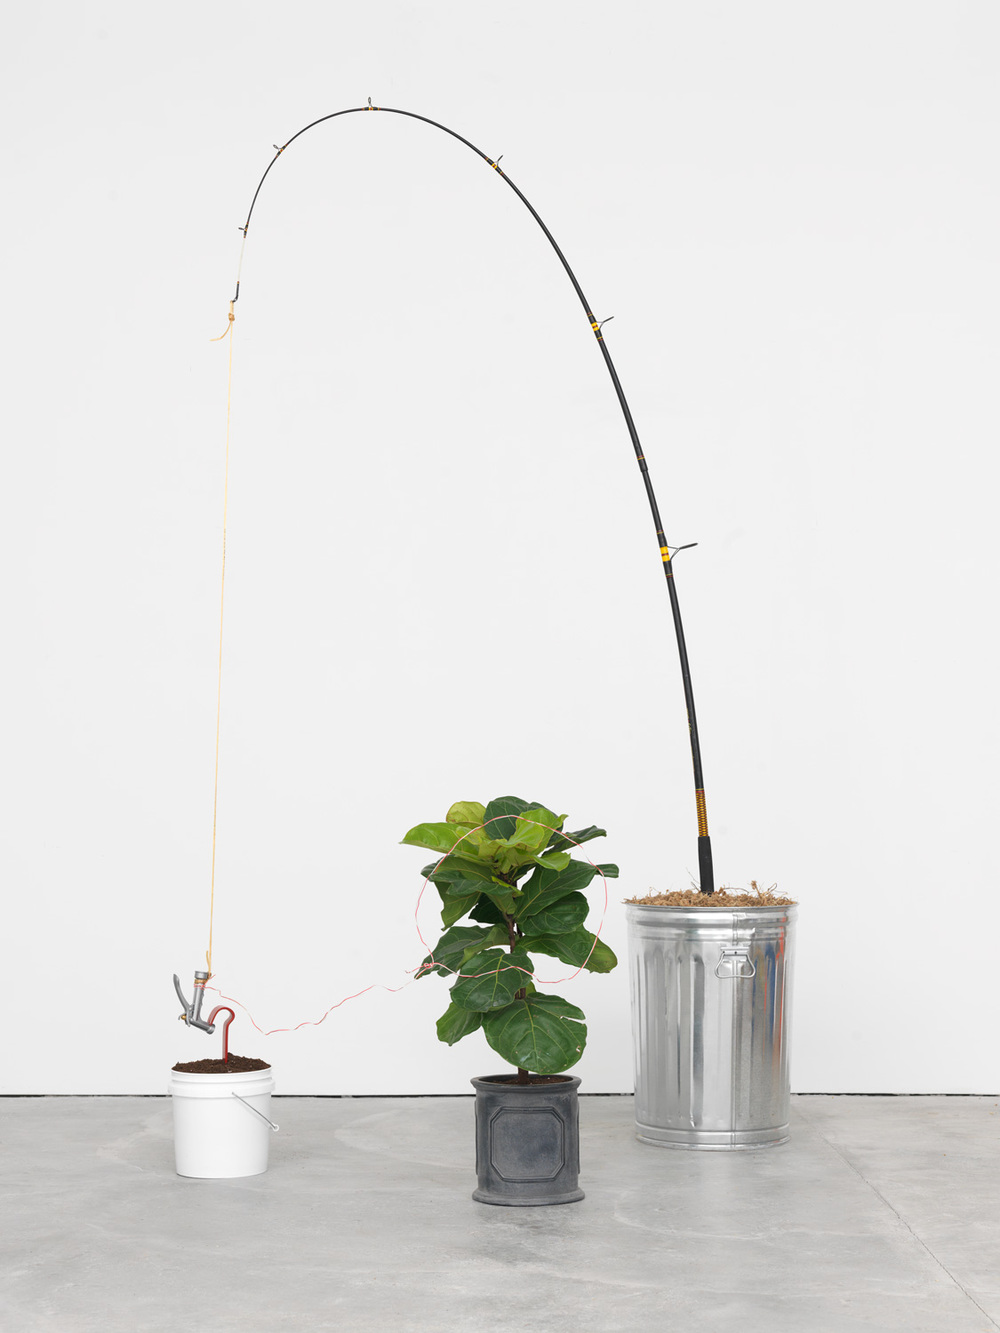 Large Game, 2015 Trash can, dry foliage, fishing pole, lamp cord, pistol grip garden hose nozzle, flat crowbar, soil, paint bucket, wire, and potted plant 99 x 64 x 64 inches